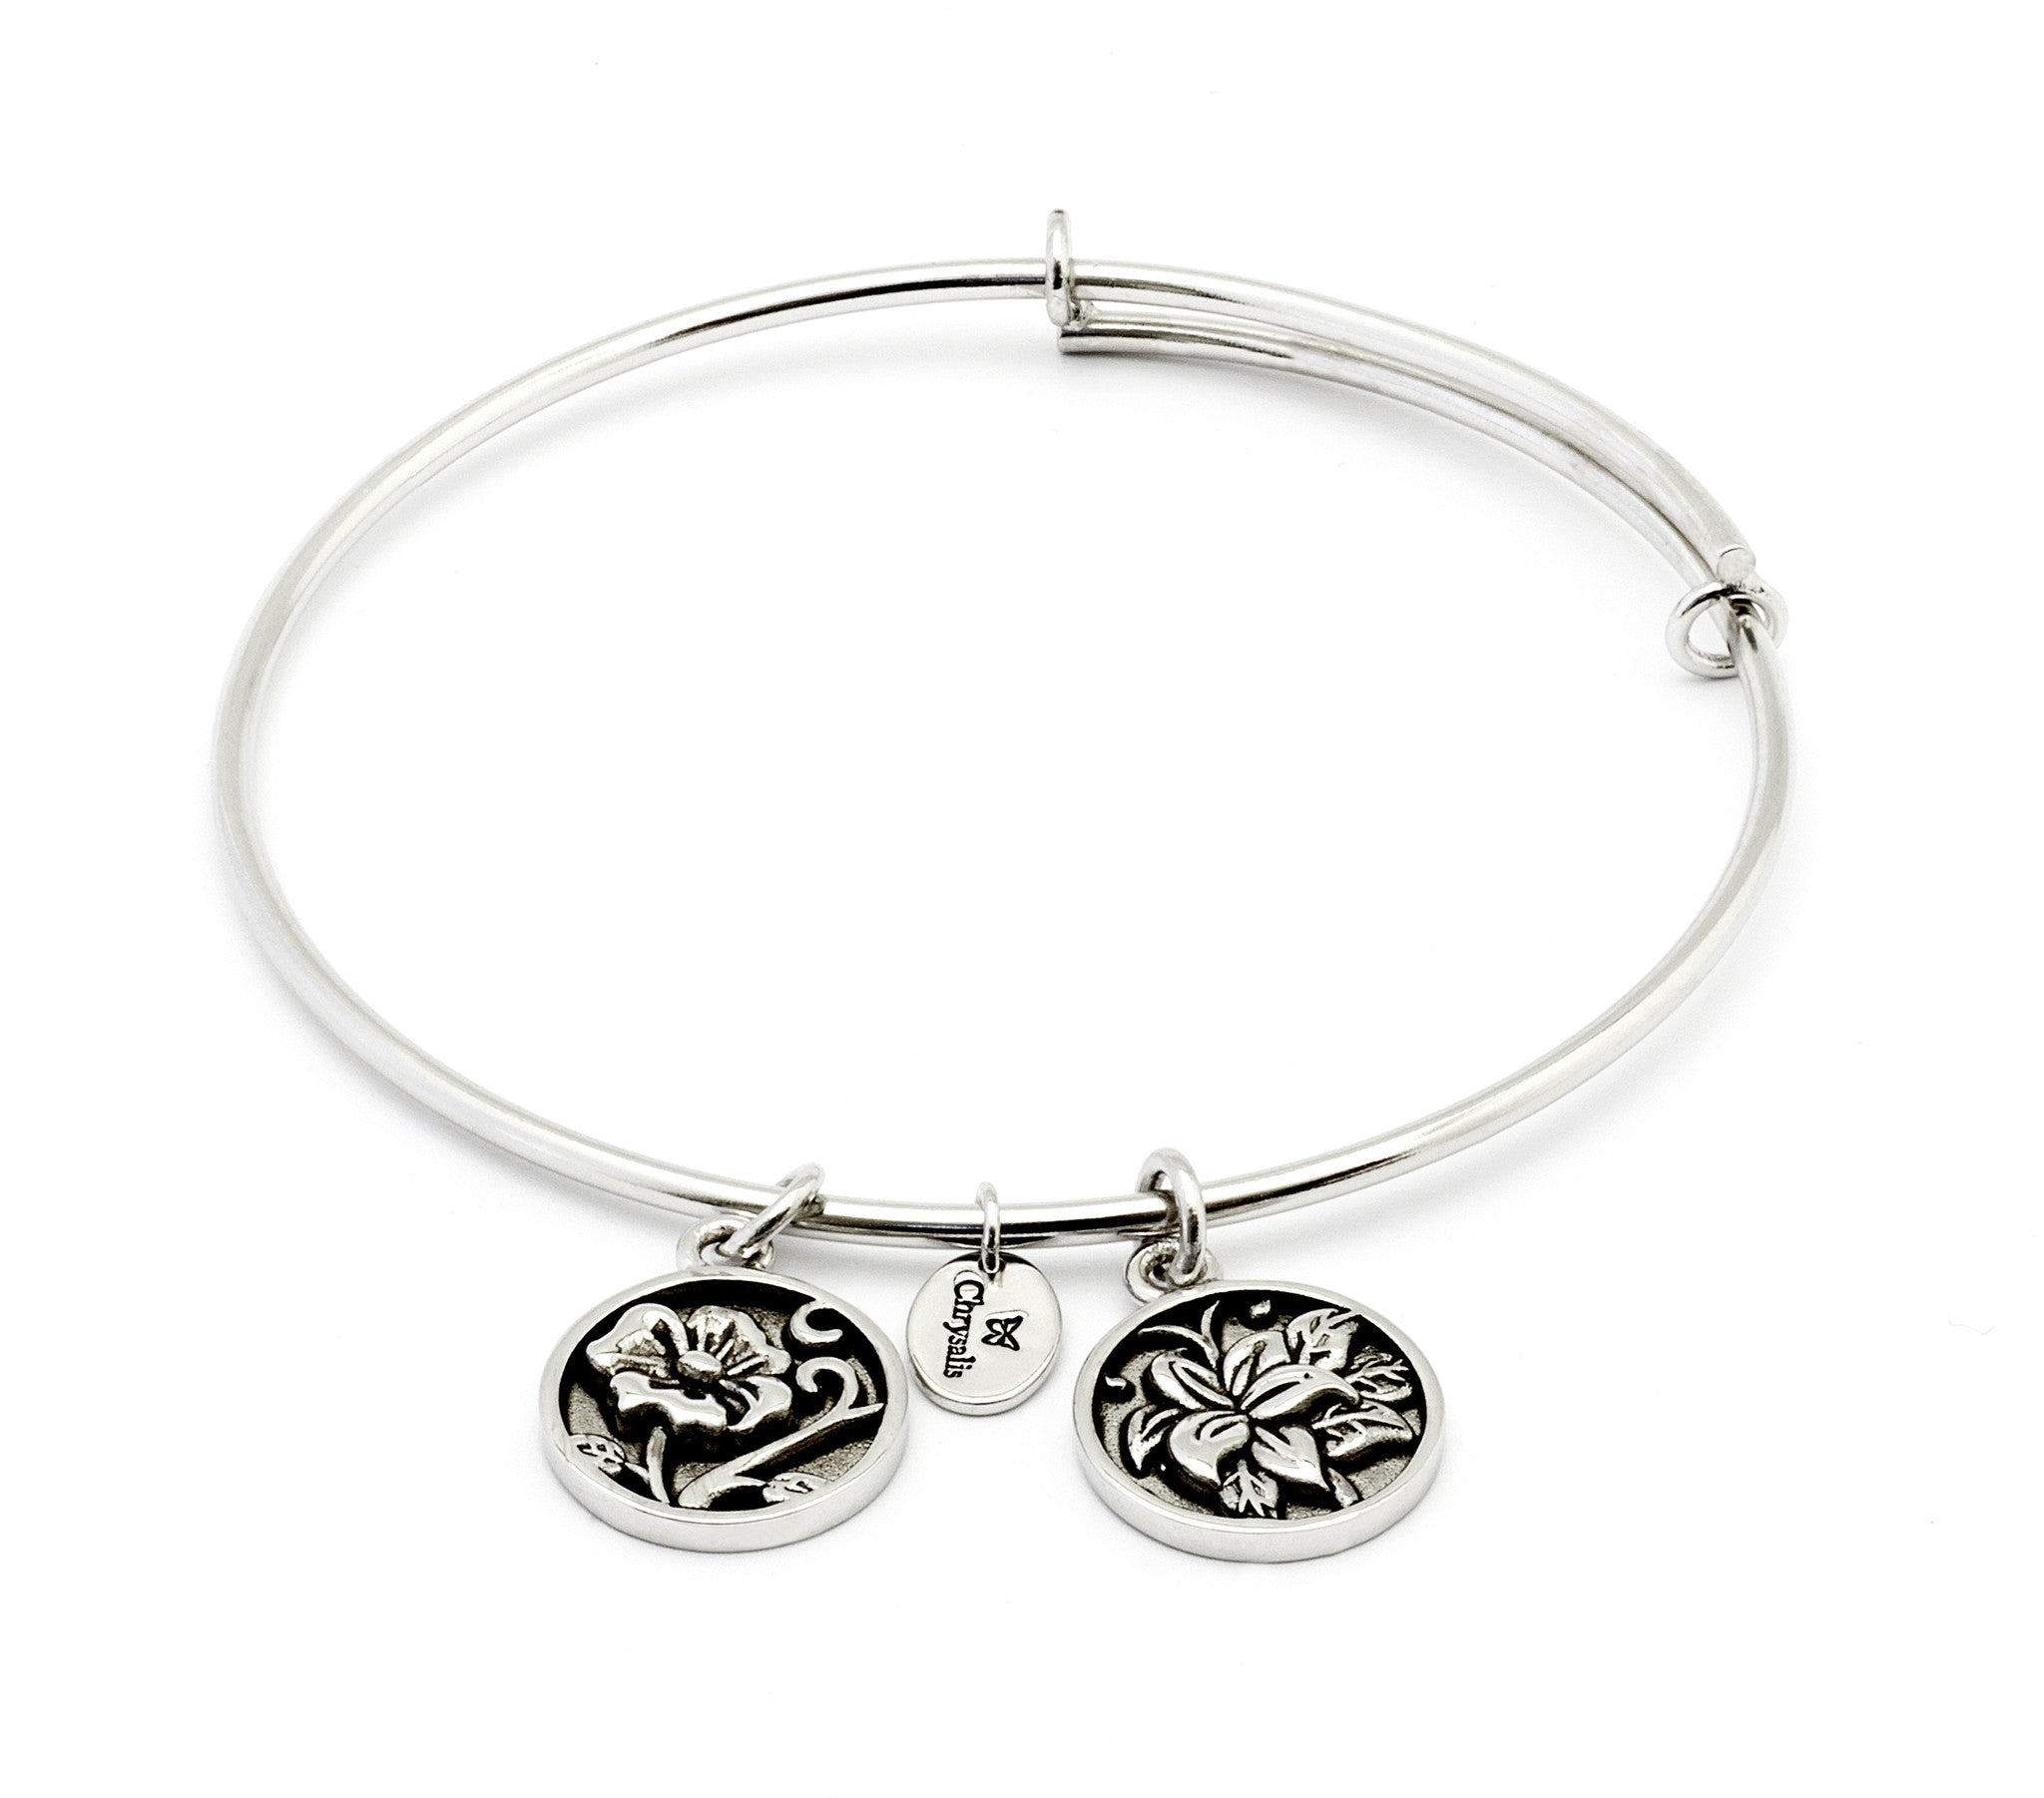 28f60f1c8e6ba Chrysalis SERENITY NATURE EXPANDABLE BANGLE - Offers calm spiritual energy